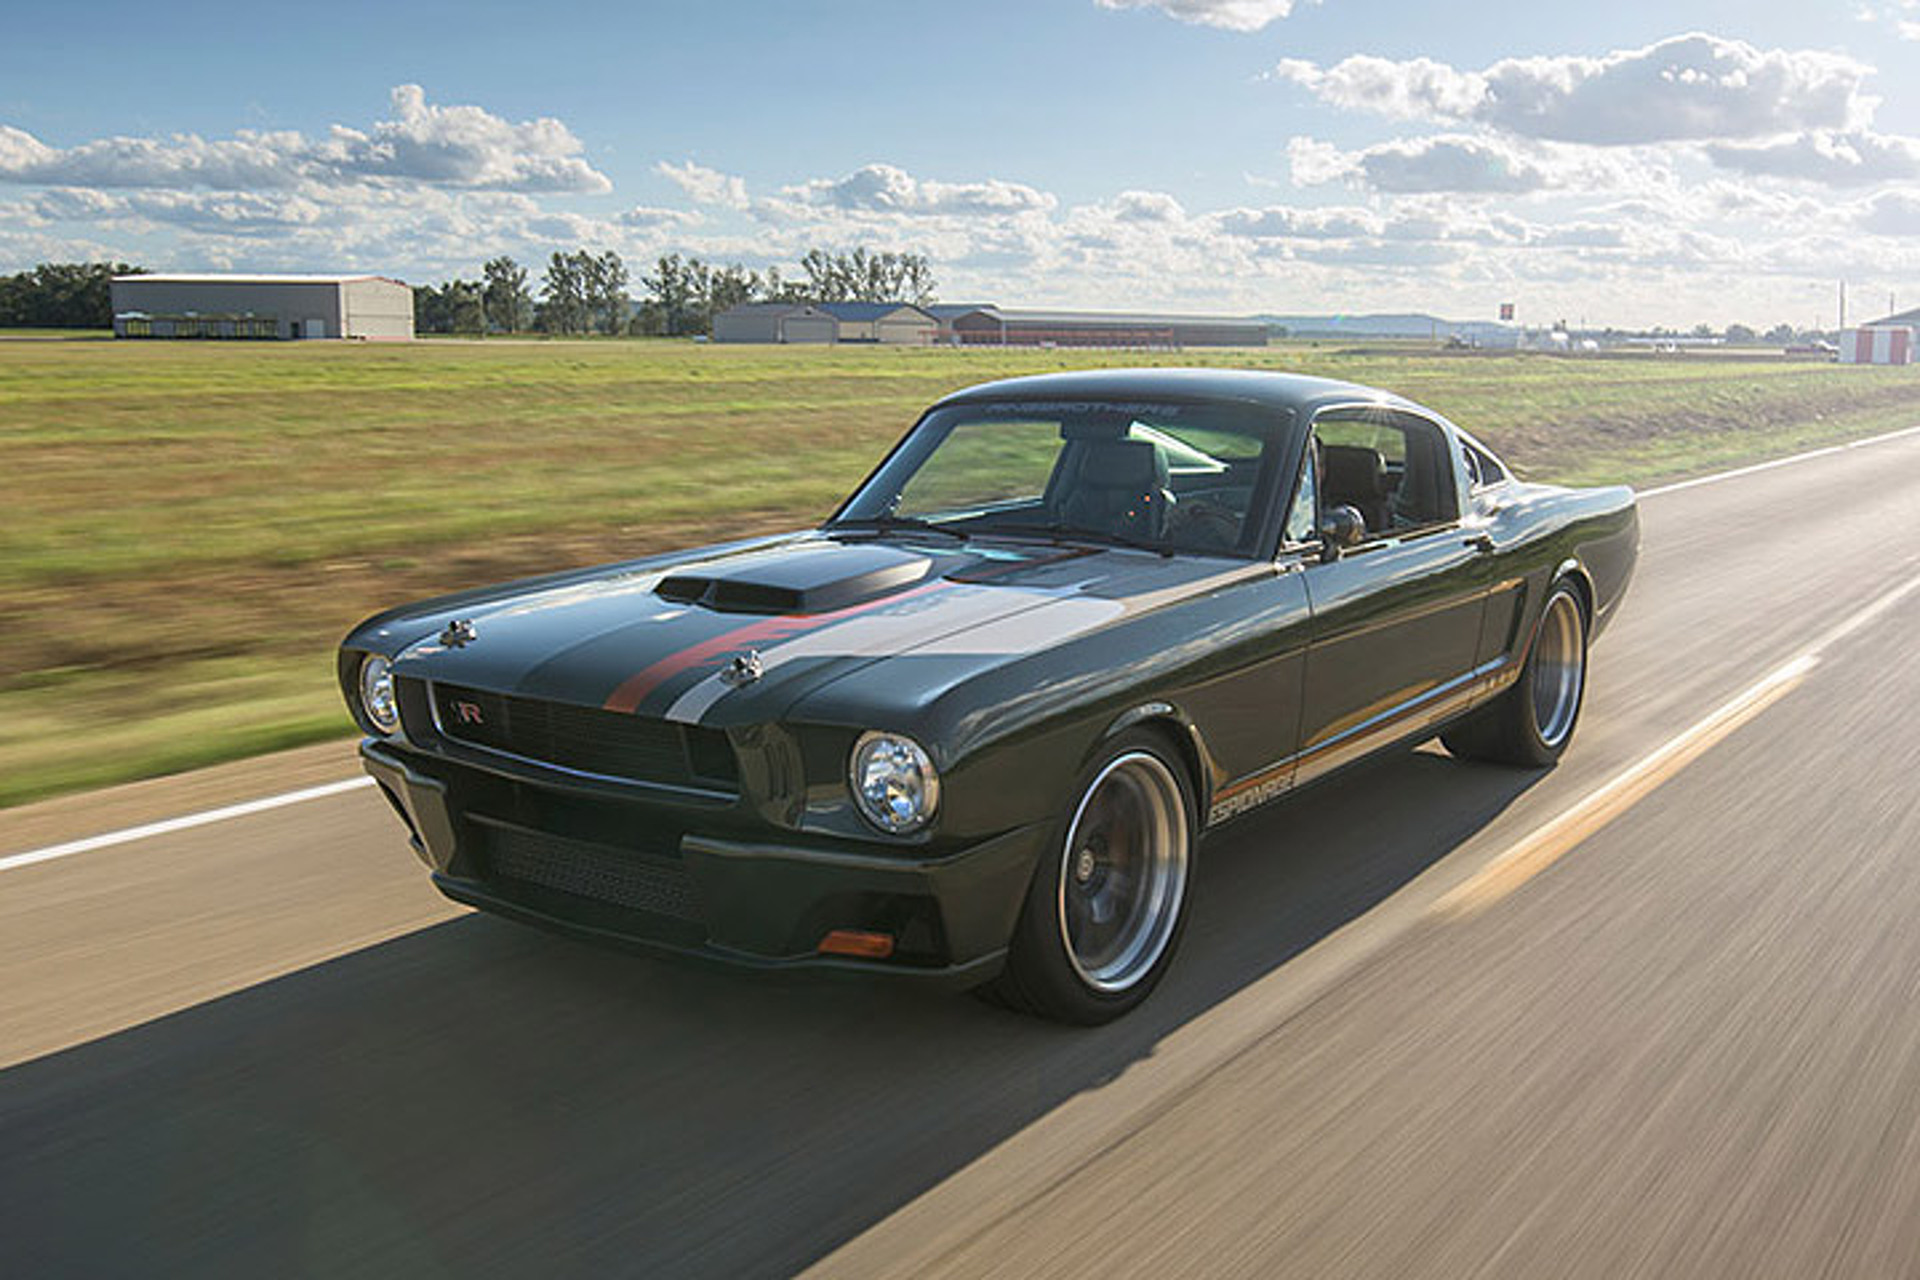 959-HP Ford Mustang \'Espionage\' Makes Other Muscle Cars Look Tame